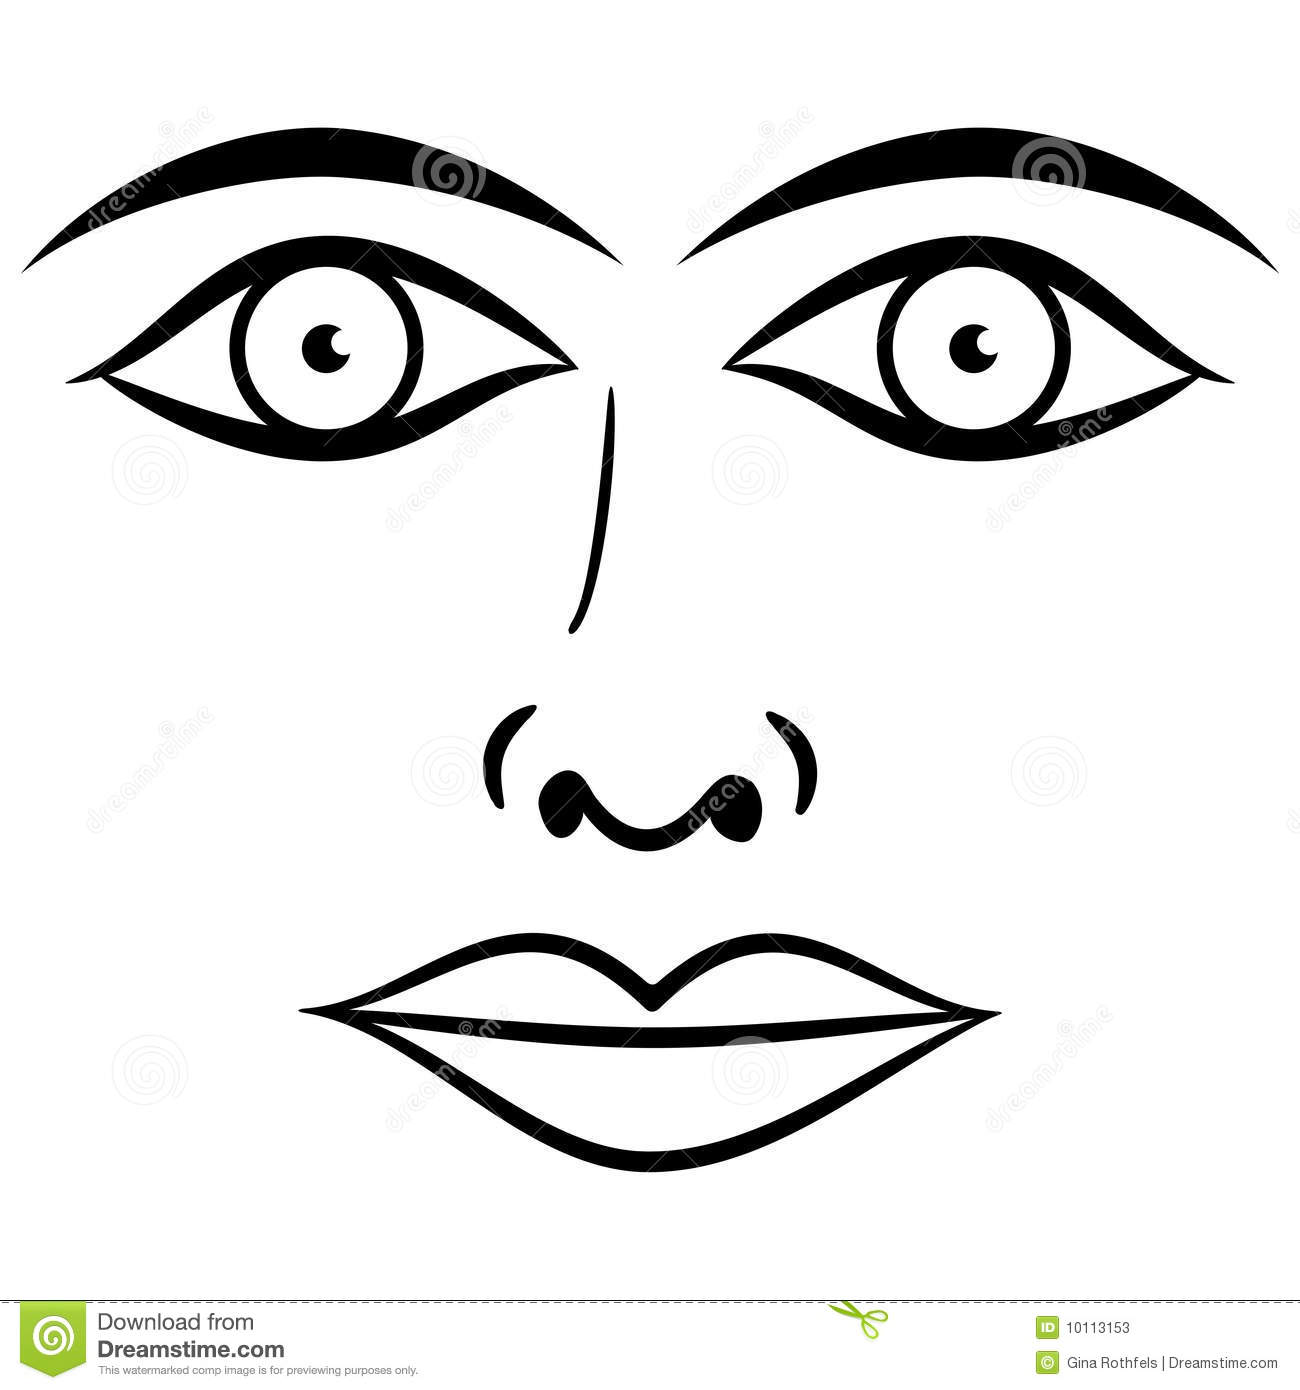 Black and white face vector